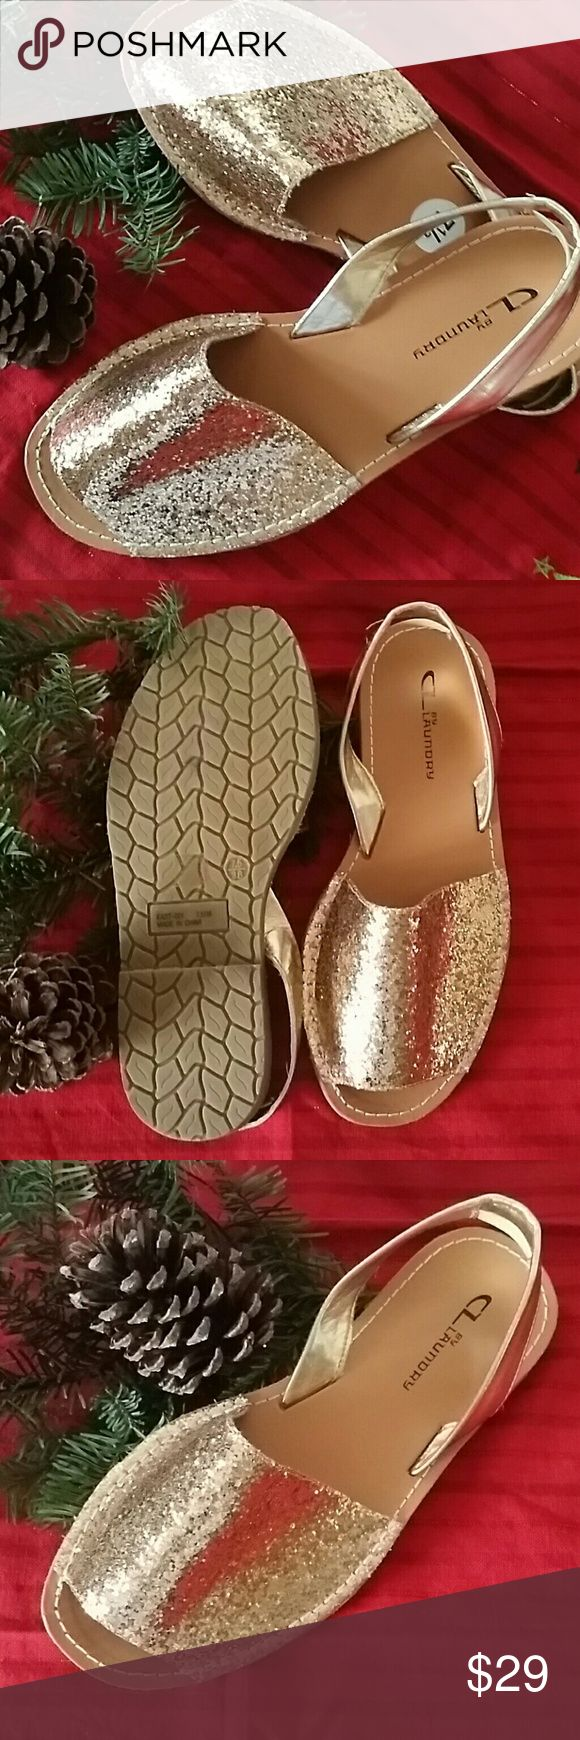 CL Laundry Gold Glitter Sandals 7.5 Cute Sandals for the Holidays! :) CL Laundry Shoes Sandals